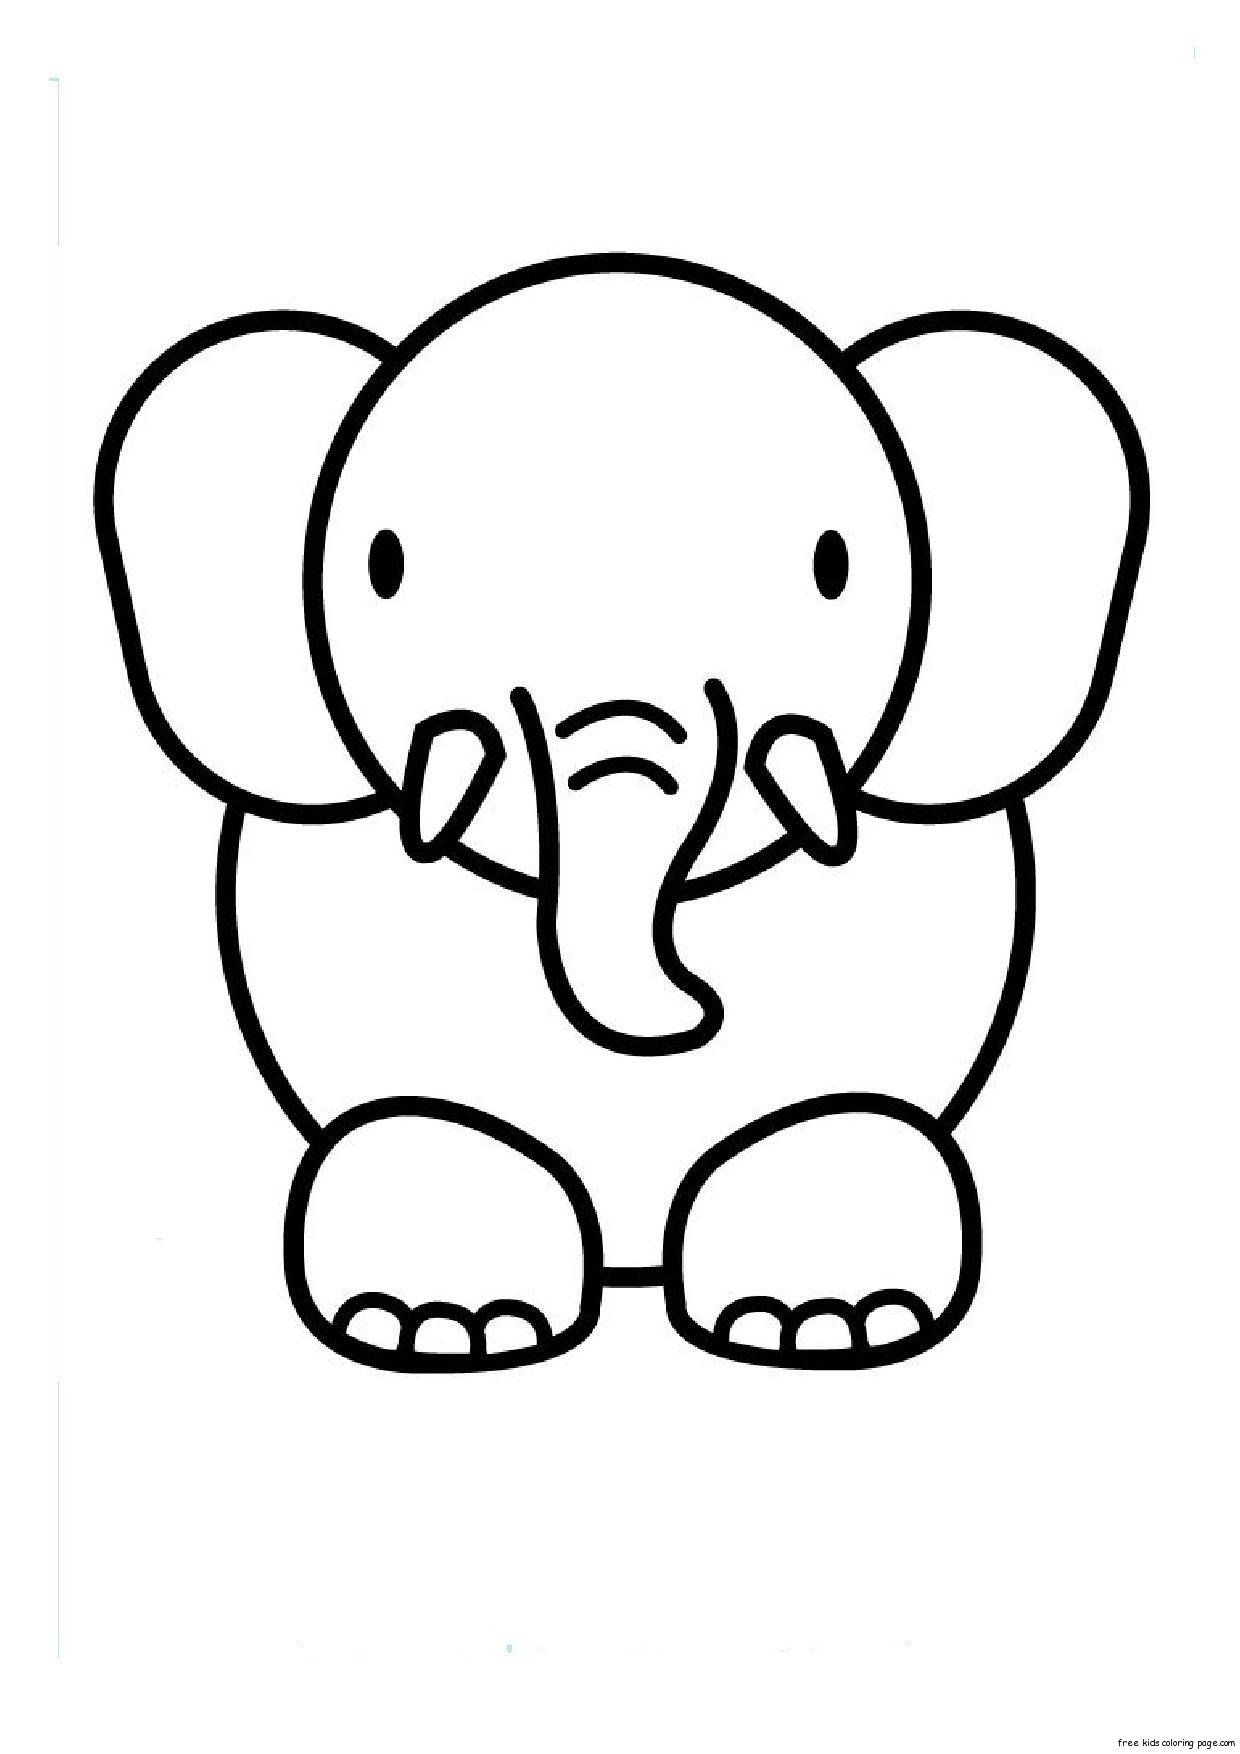 Elephant Coloring Pages For Kids Coloring Pages Free Elephant For Kids Clip Art Easy Cartoon Drawings Animal Drawings Wild Animals Drawing